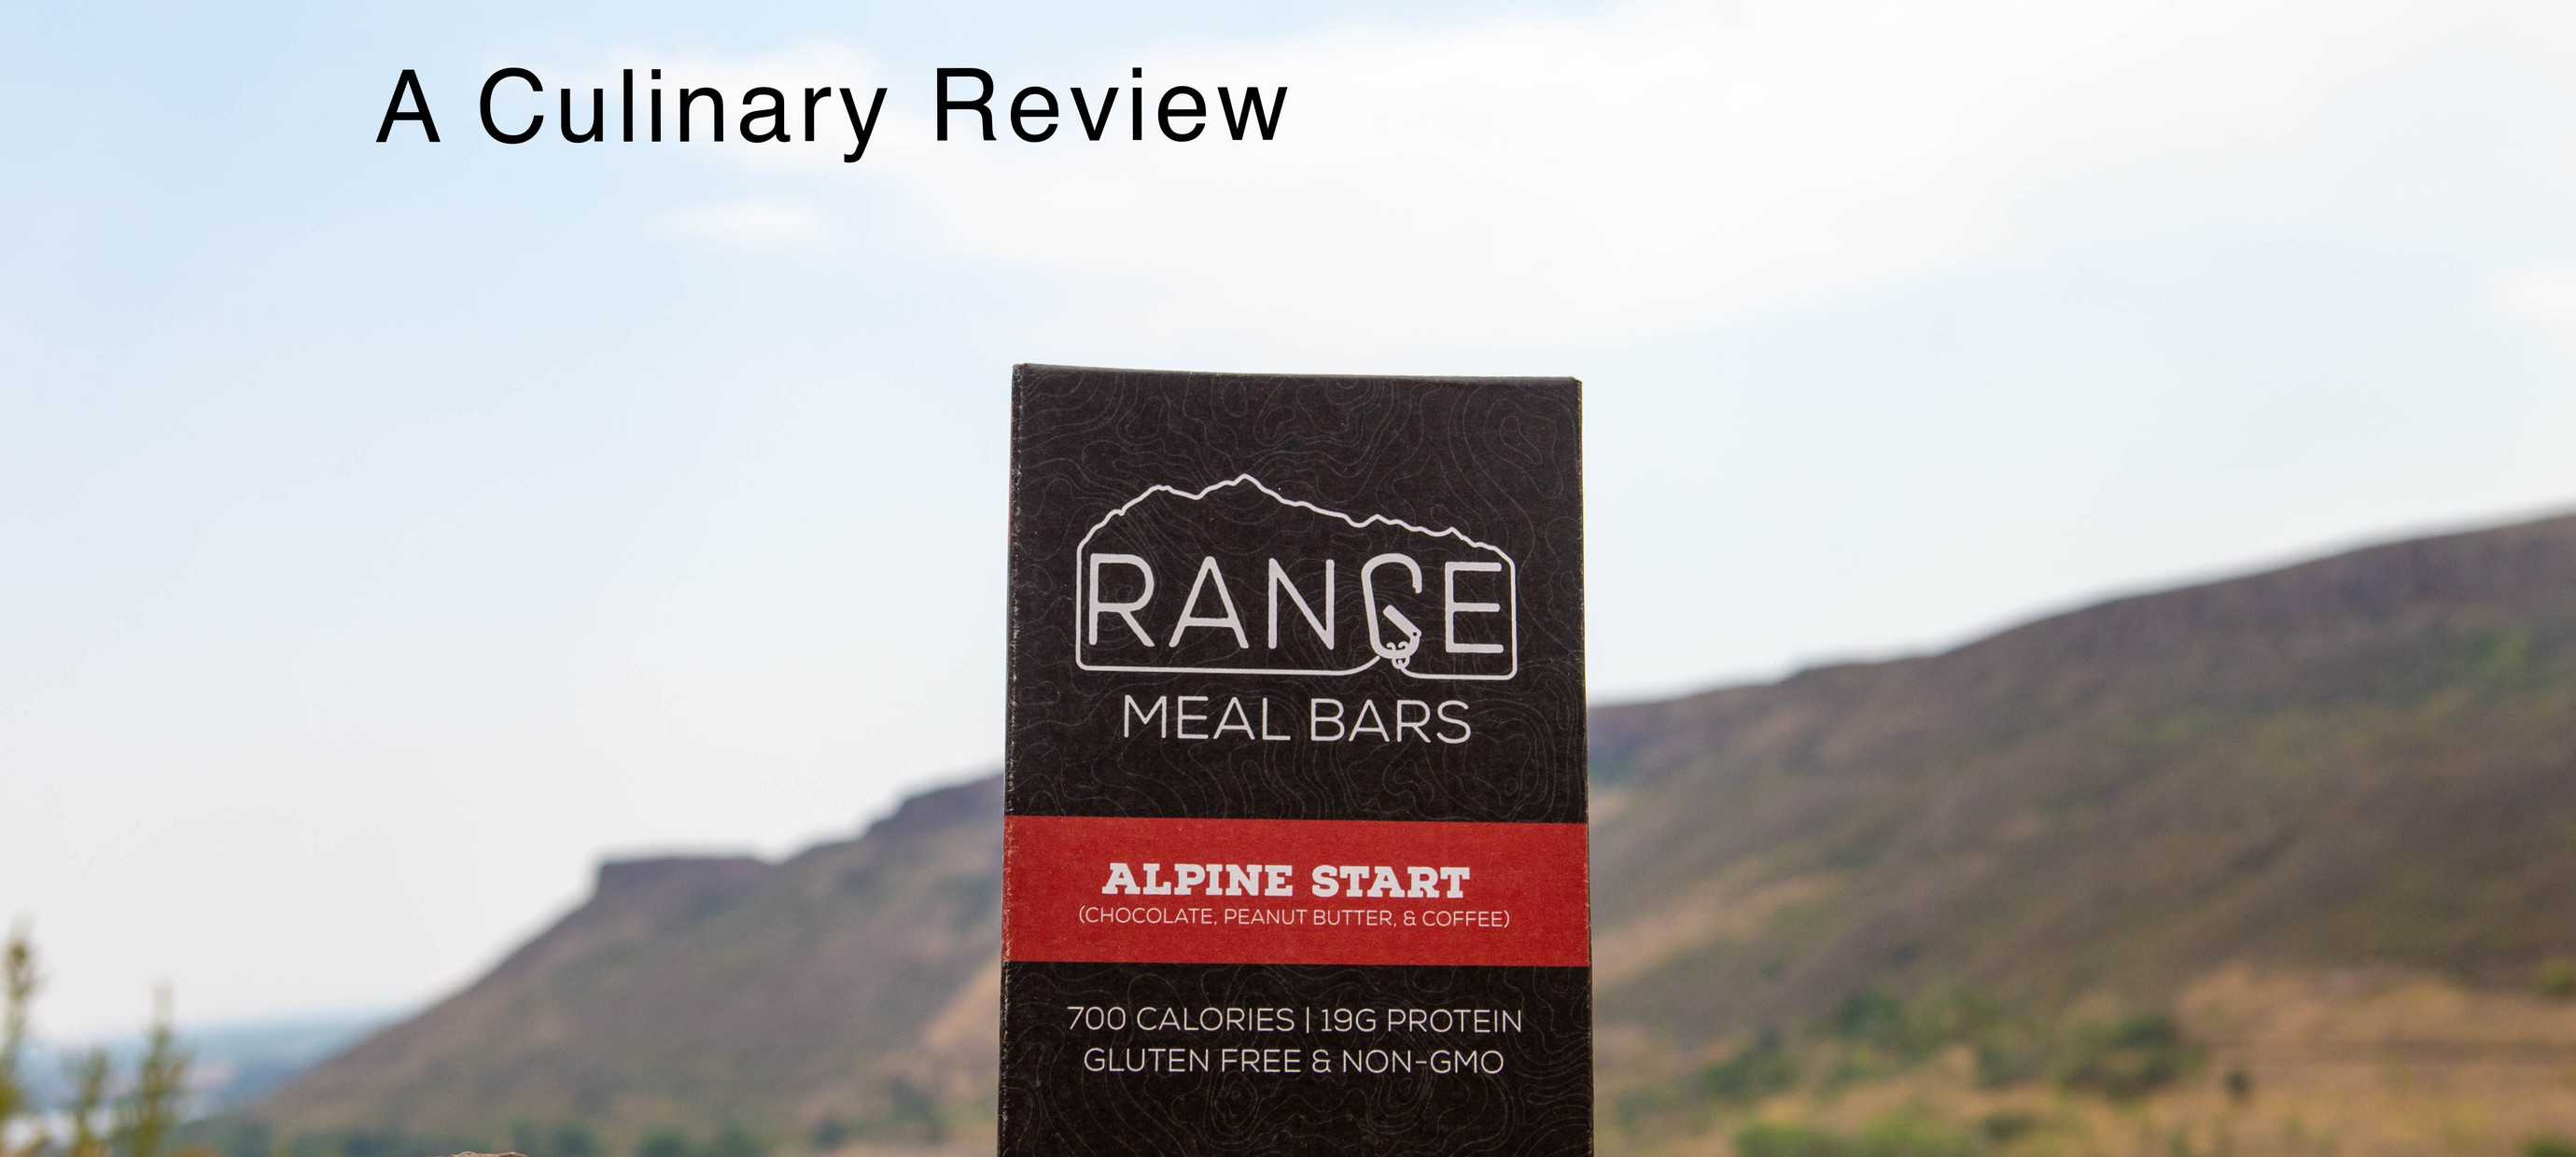 Range Meal Bars: A Culinary Review